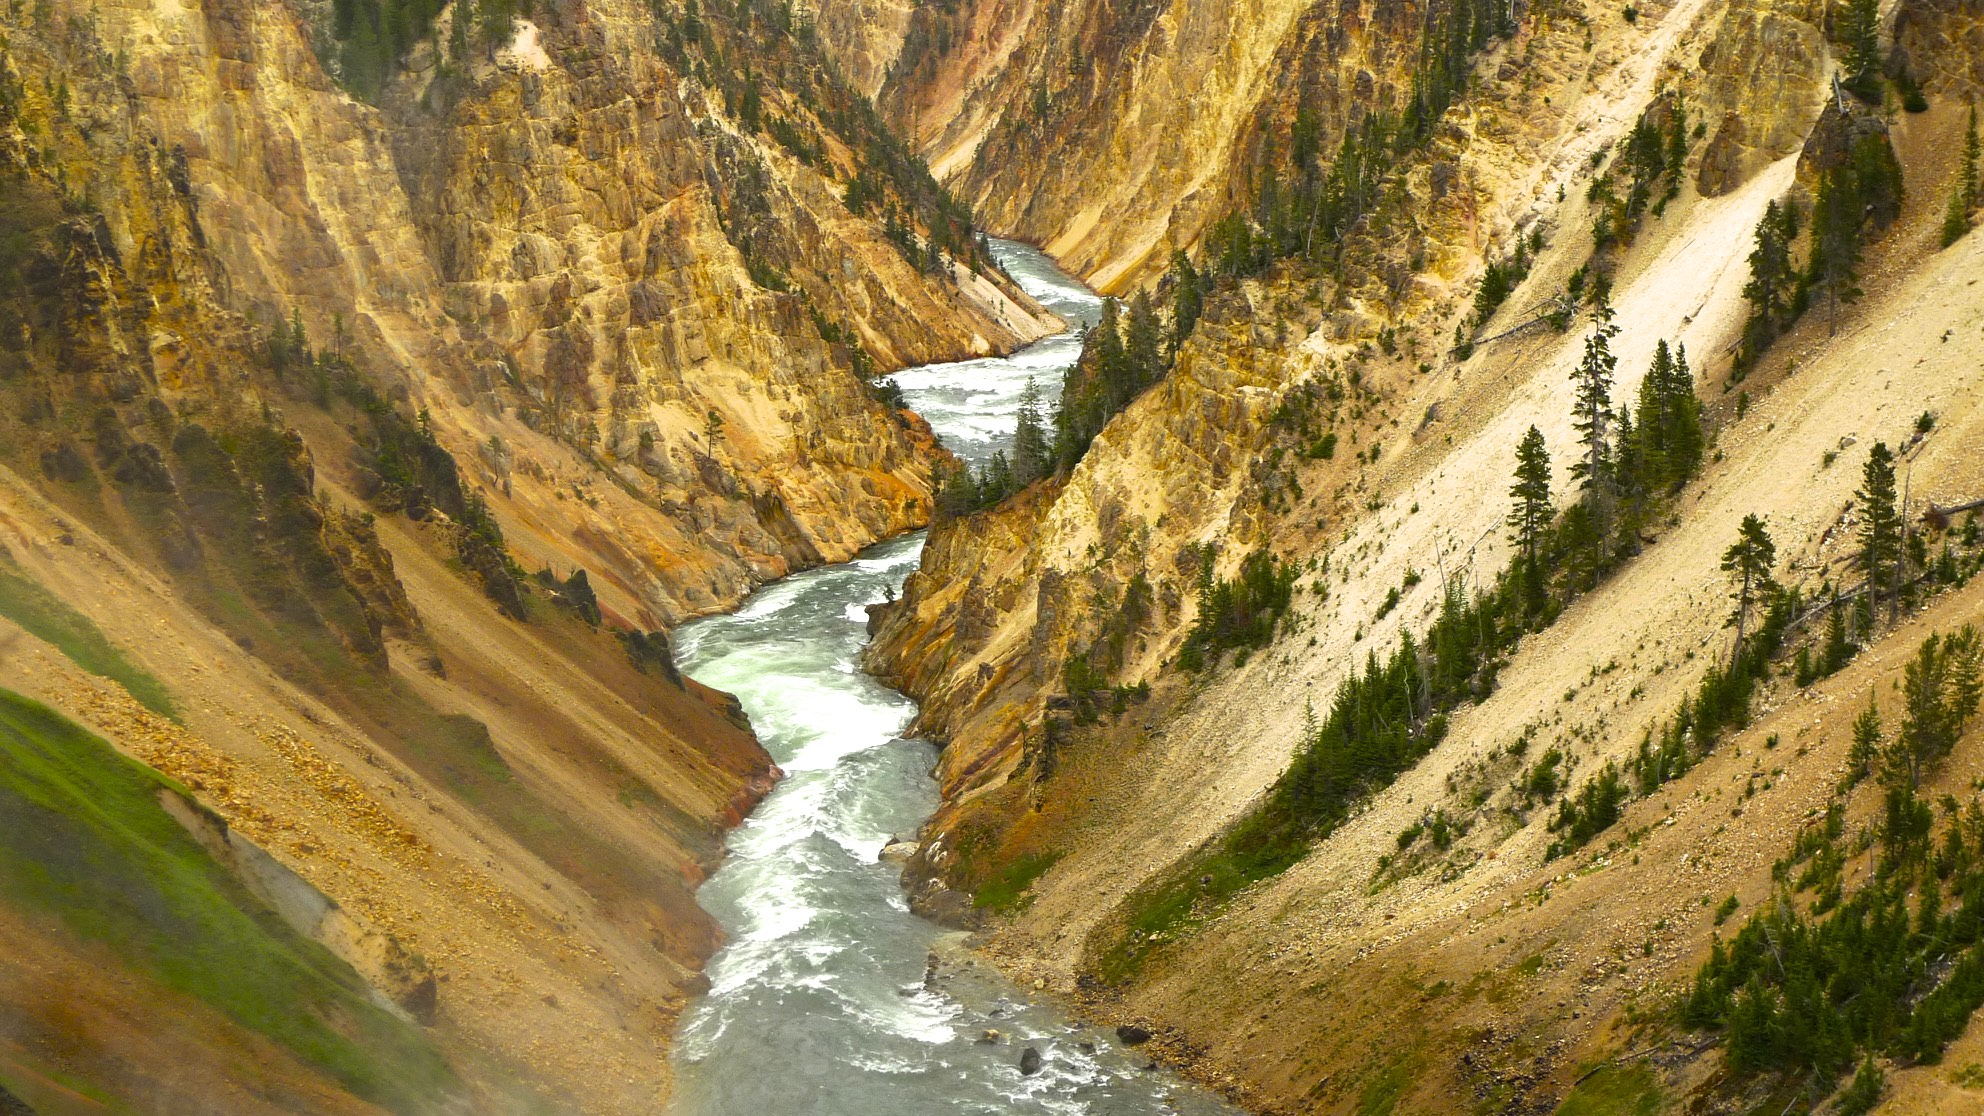 The Canyon of Yellowstone